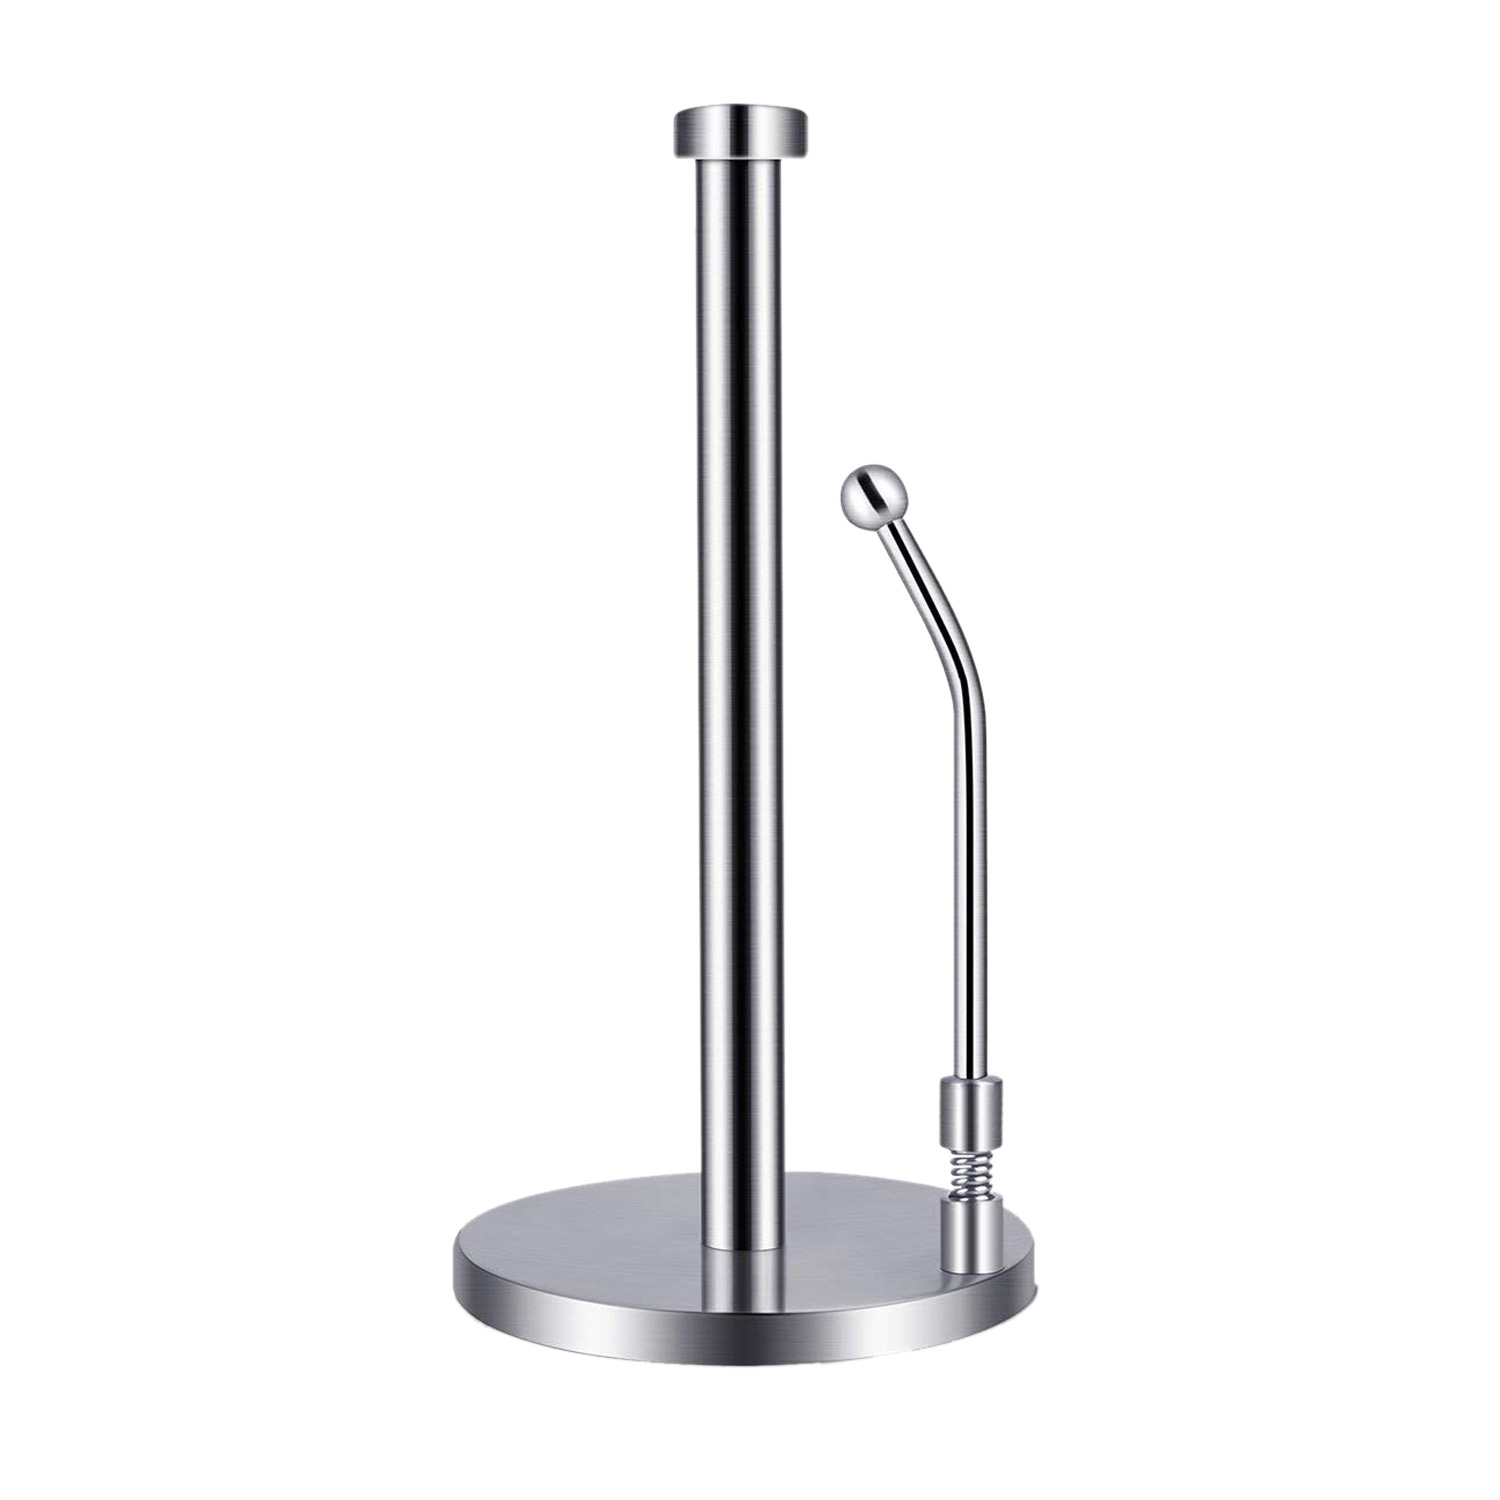 Paper Towel Holder Stainless Steel Standing Tissue Holder One-Handed Tear, Perfect Modern Design for Kitchen KeepsPaper Towel Holder Stainless Steel Standing Tissue Holder One-Handed Tear, Perfect Modern Design for Kitchen Keeps